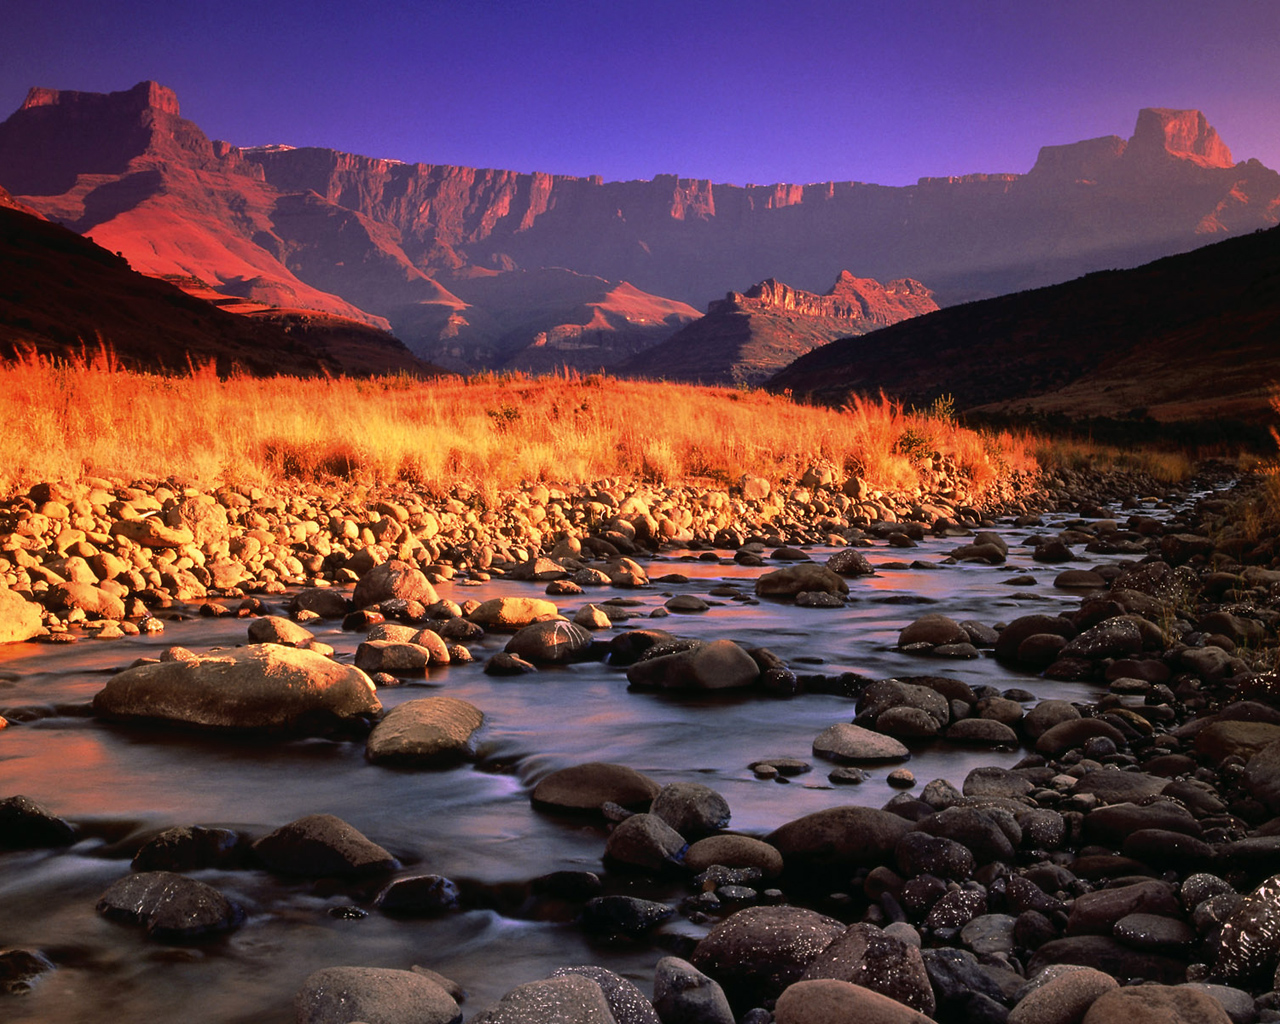 Drakensberg and Tugela River at Sunset